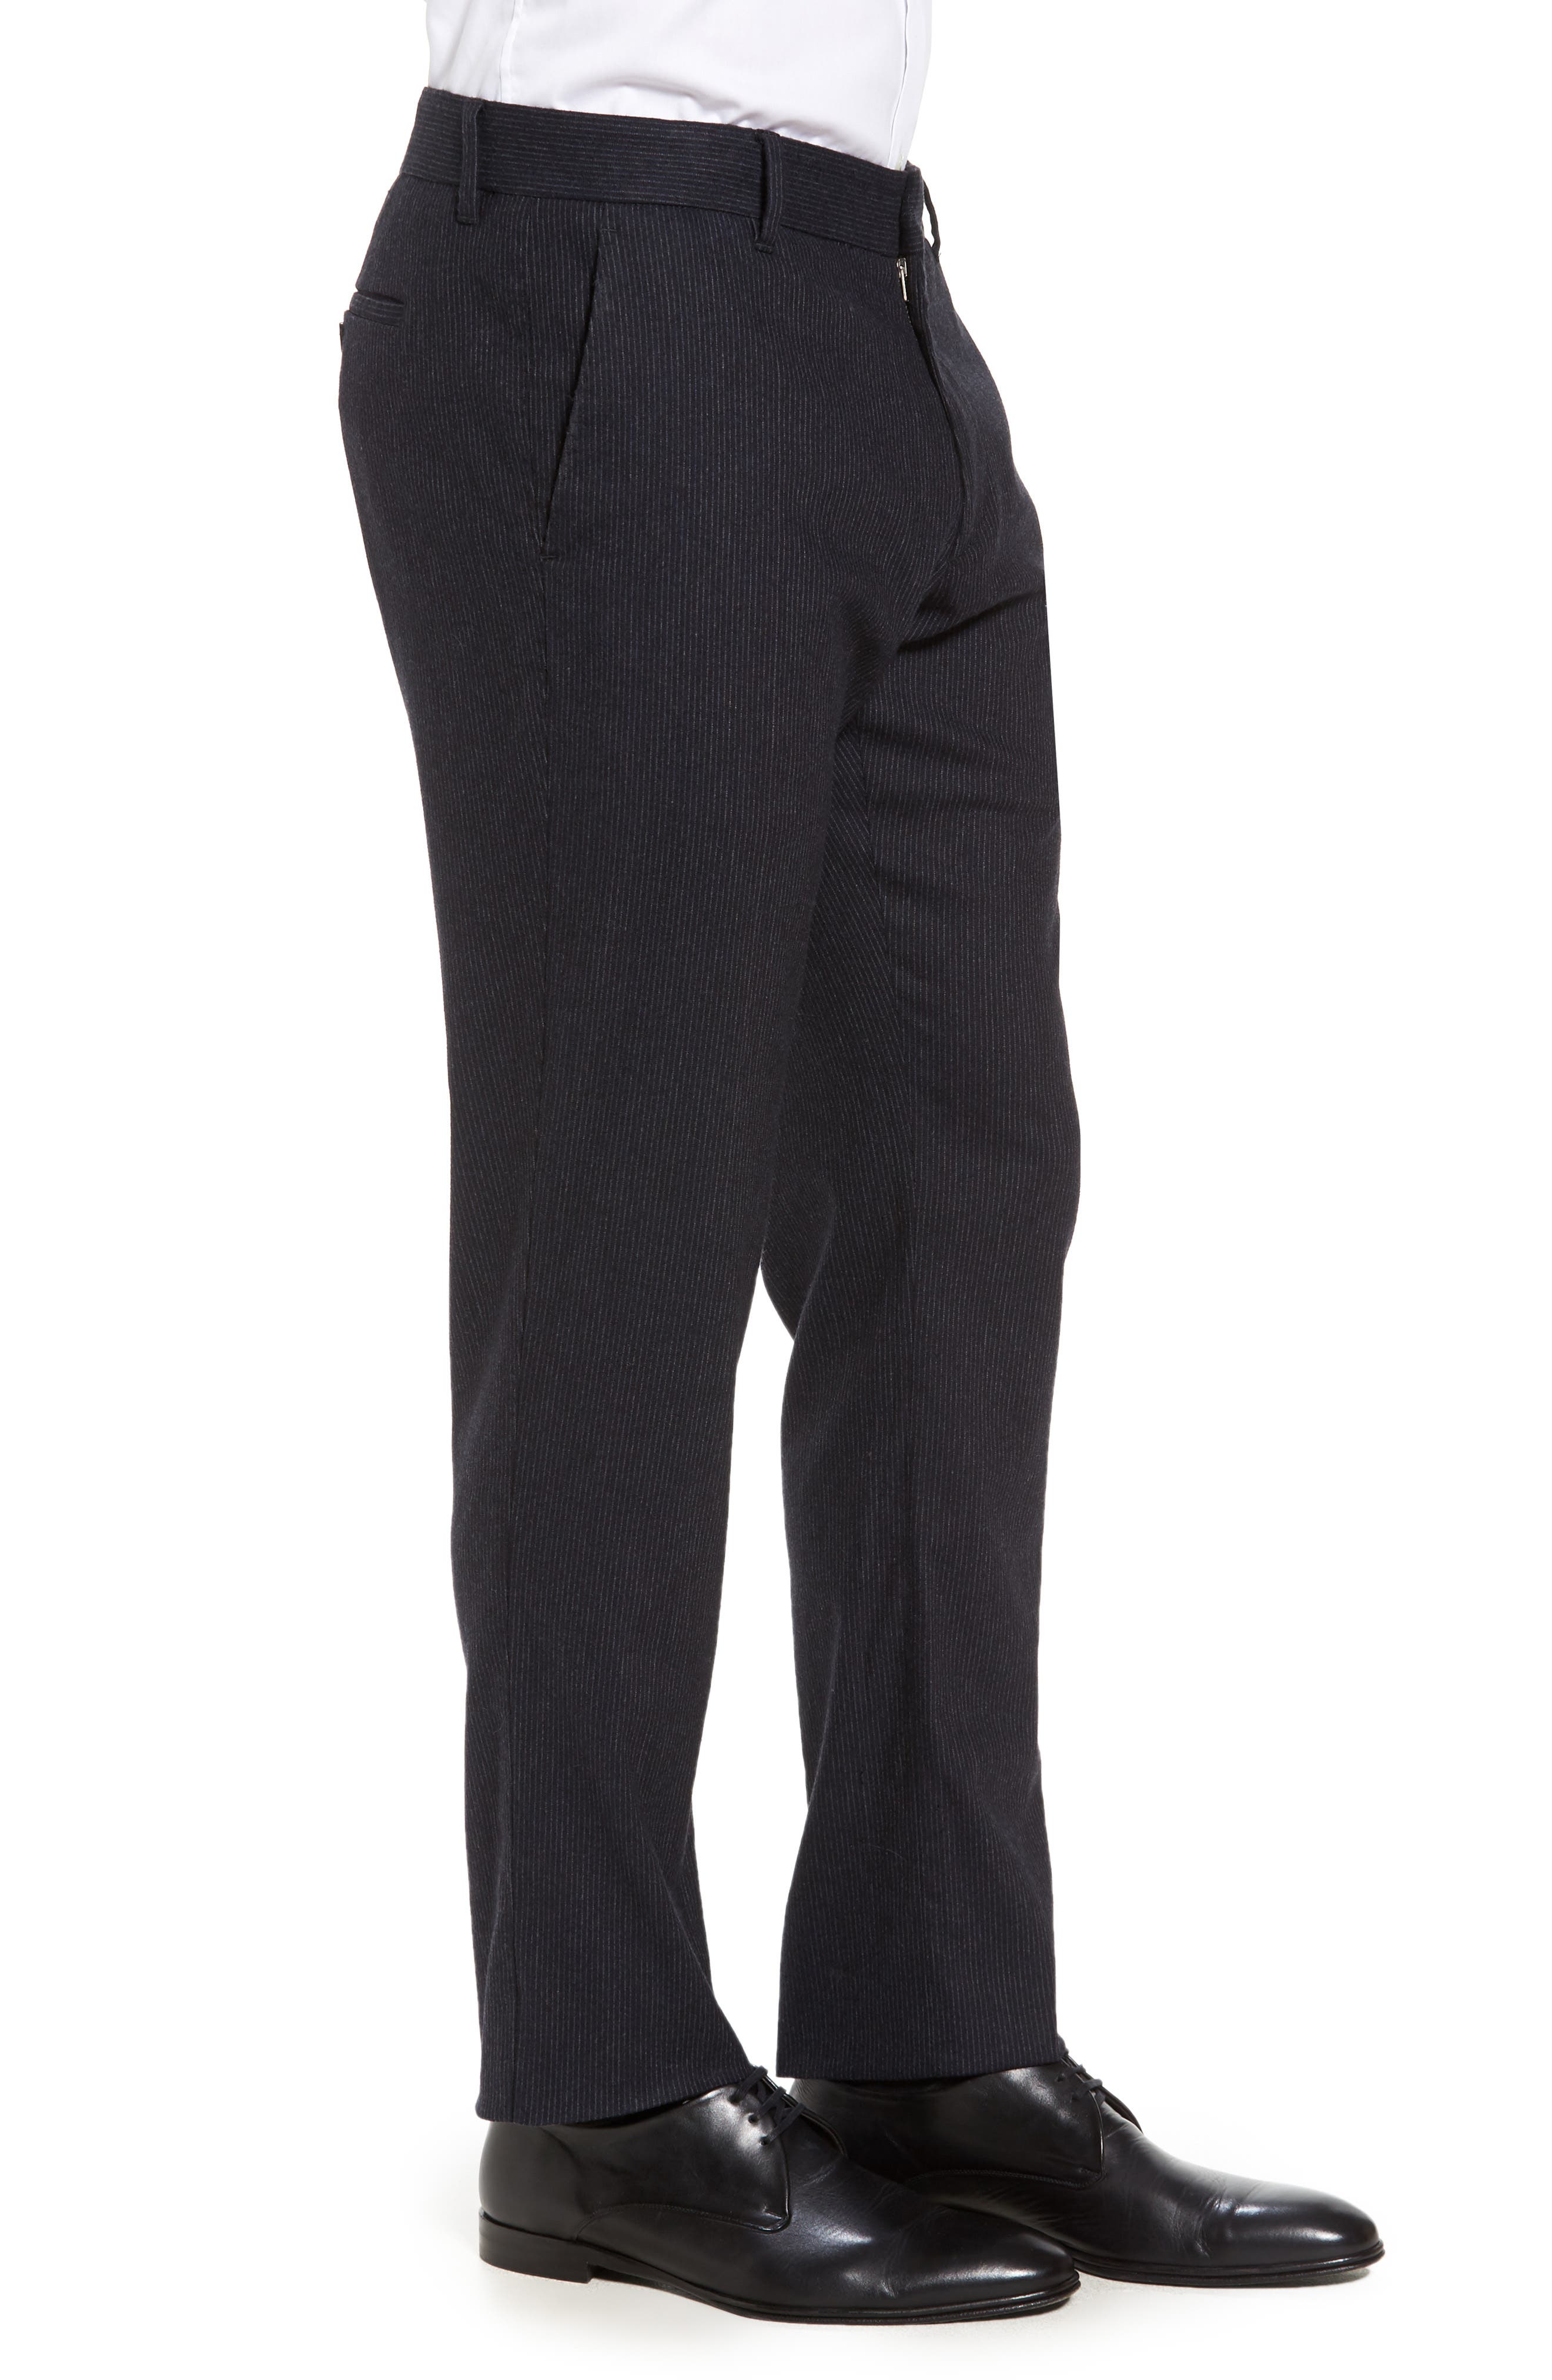 Rushmore Pinstripe Stretch Wool Blend Trousers,                             Alternate thumbnail 3, color,                             Navy